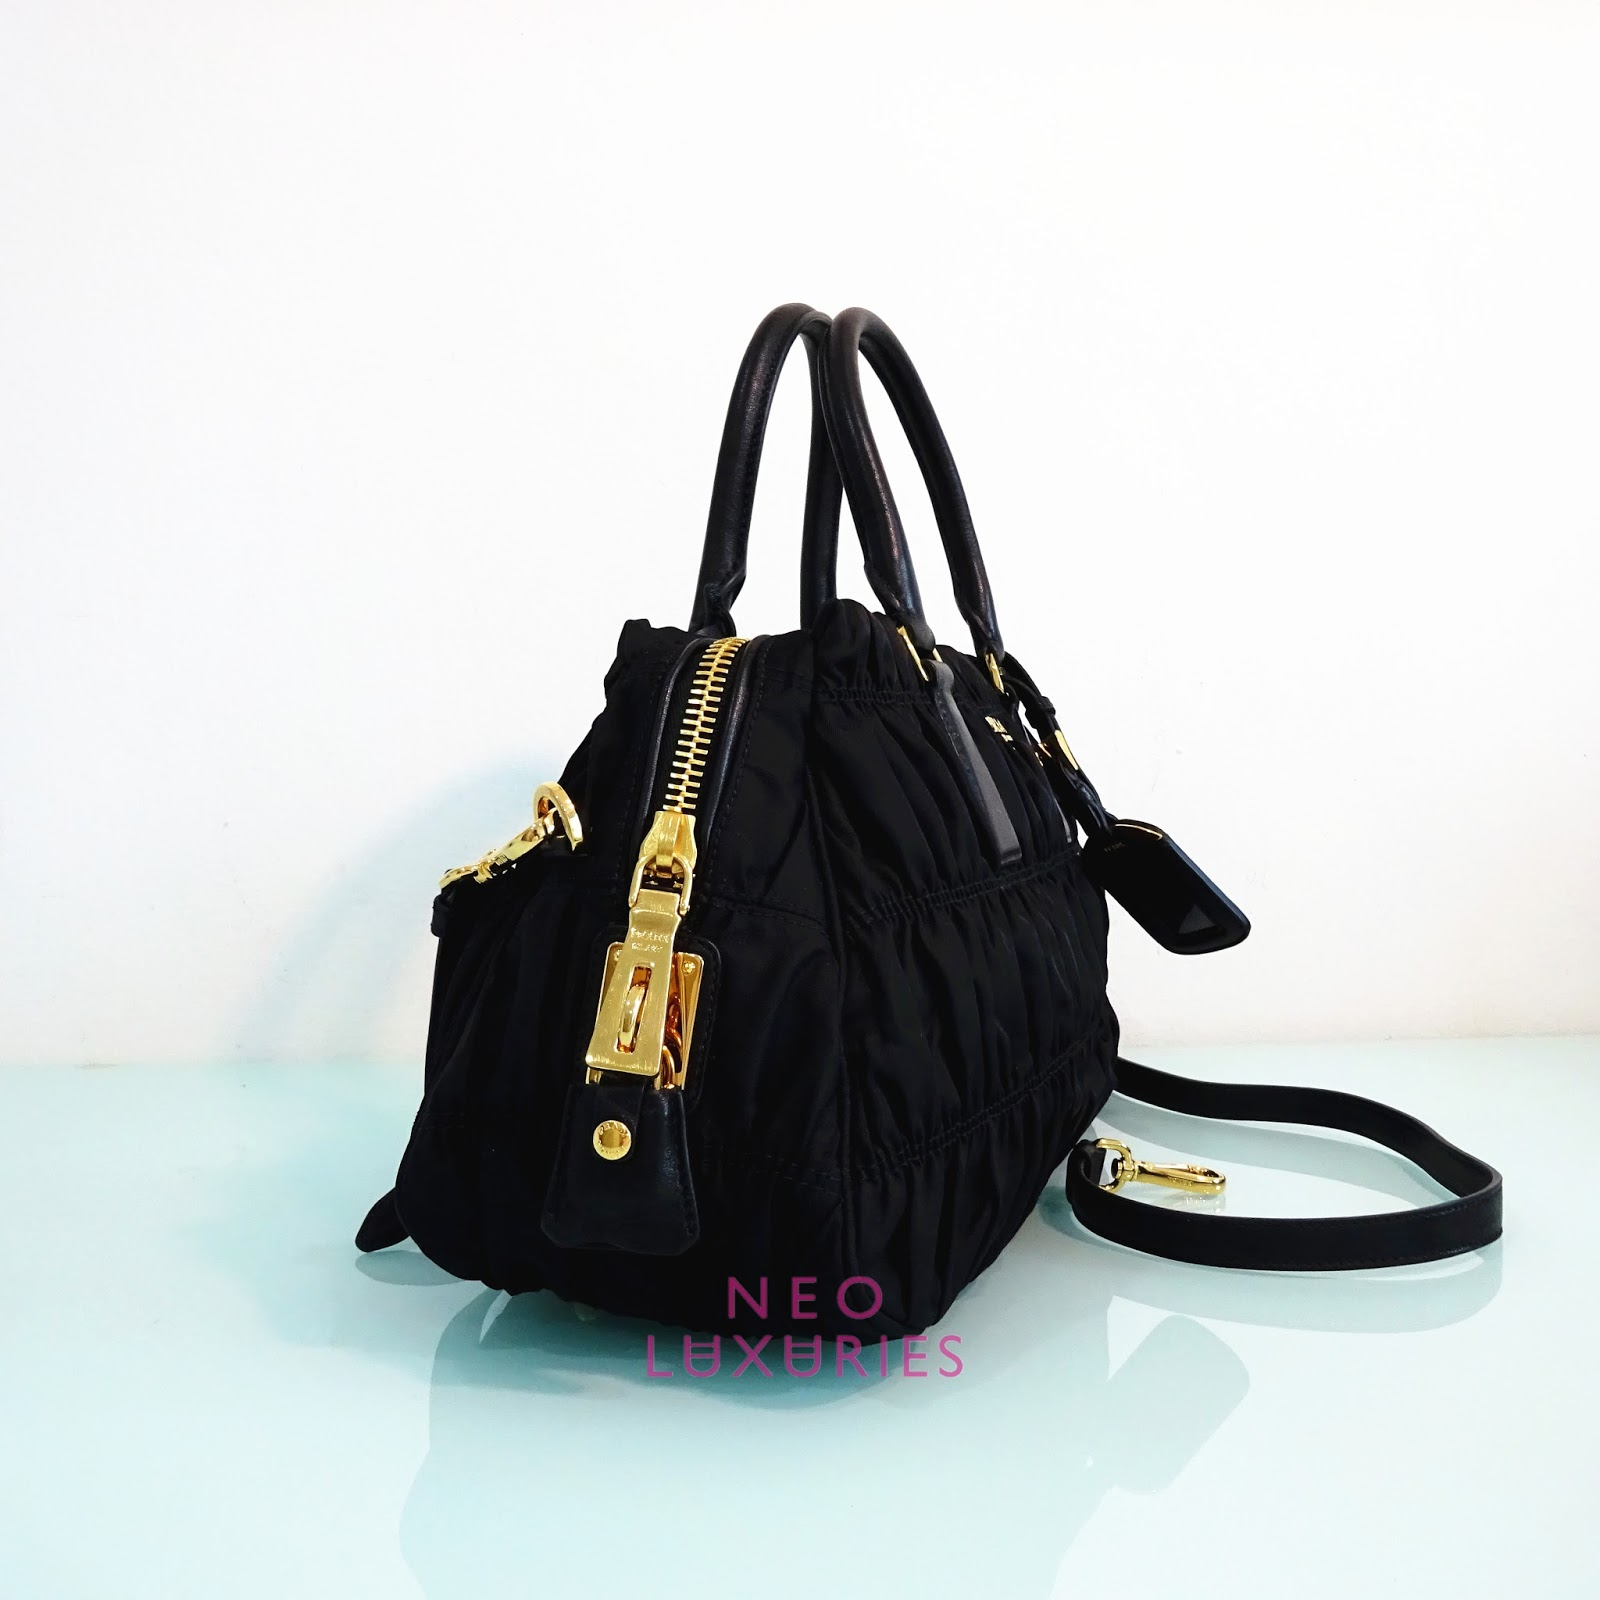 267846fce031 ... cheap attached thumbnails neo luxuries sold prada tessuto nappa gaufre  small top handle bag bn1407 b1407m ...